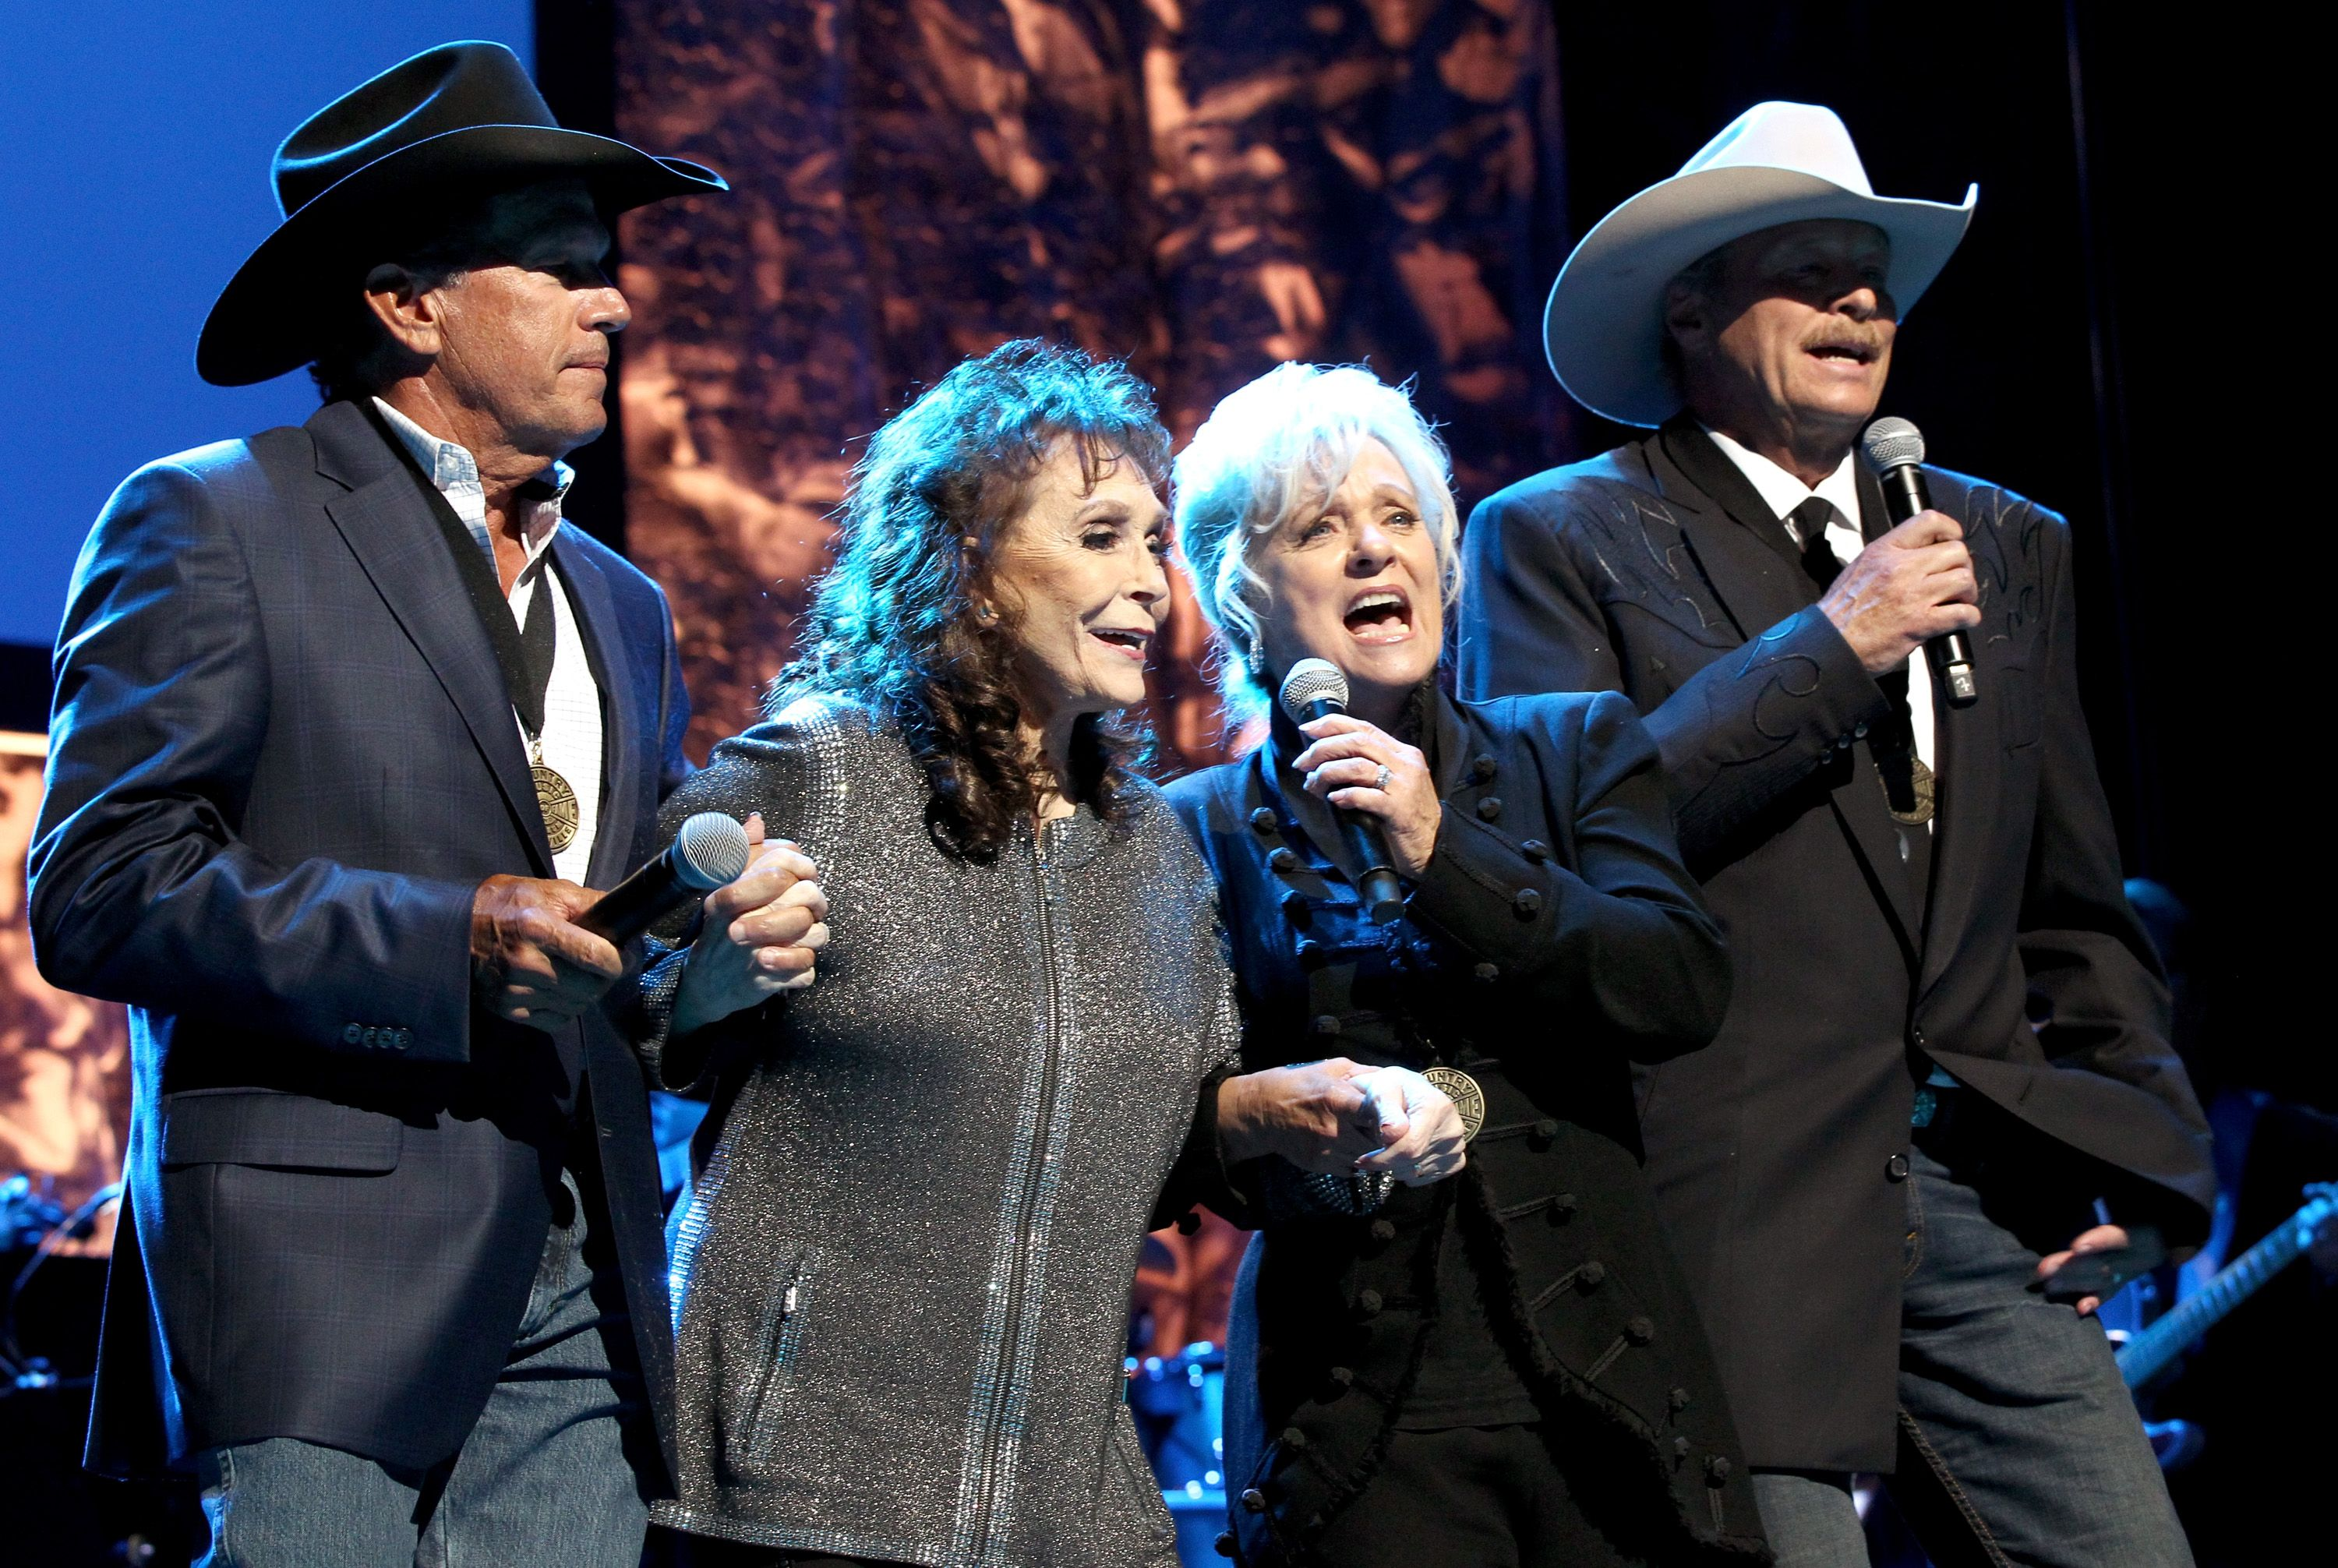 Loretta Lynn Makes Surprise Appearance To Welcome Alan Jackson